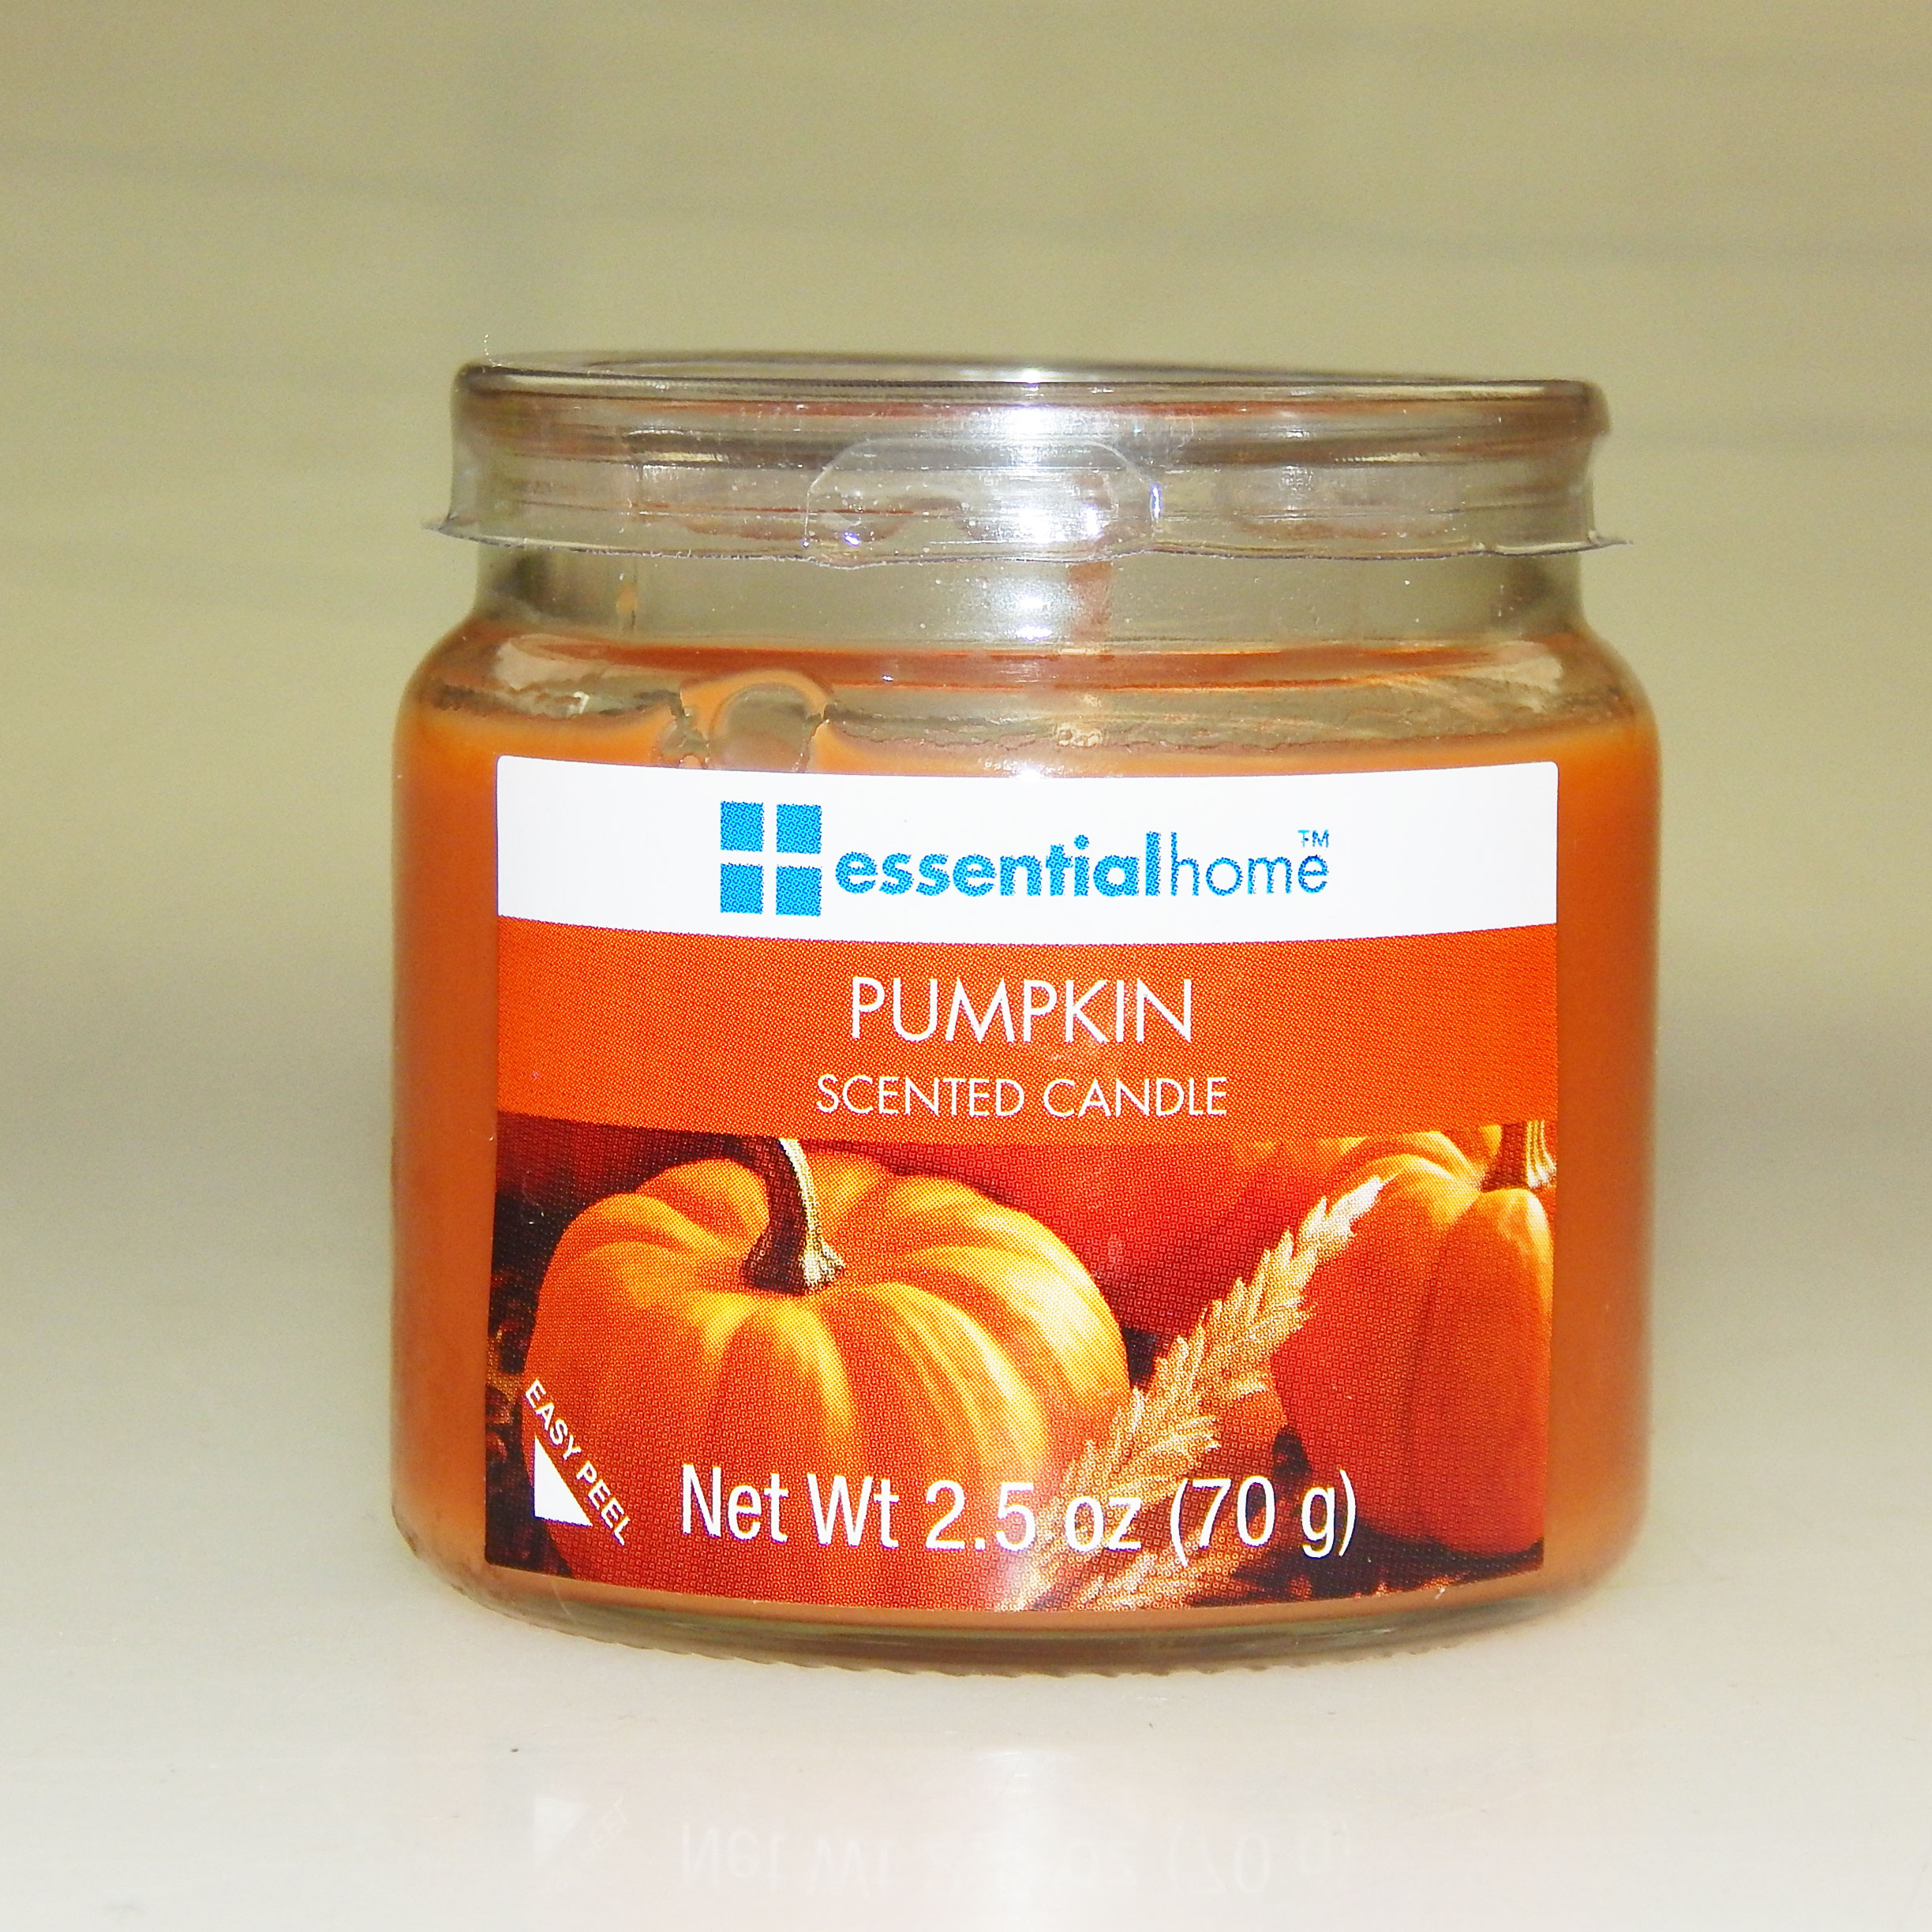 Essential Home Pumpkin Spice Scented Jar Candle 2.5 oz